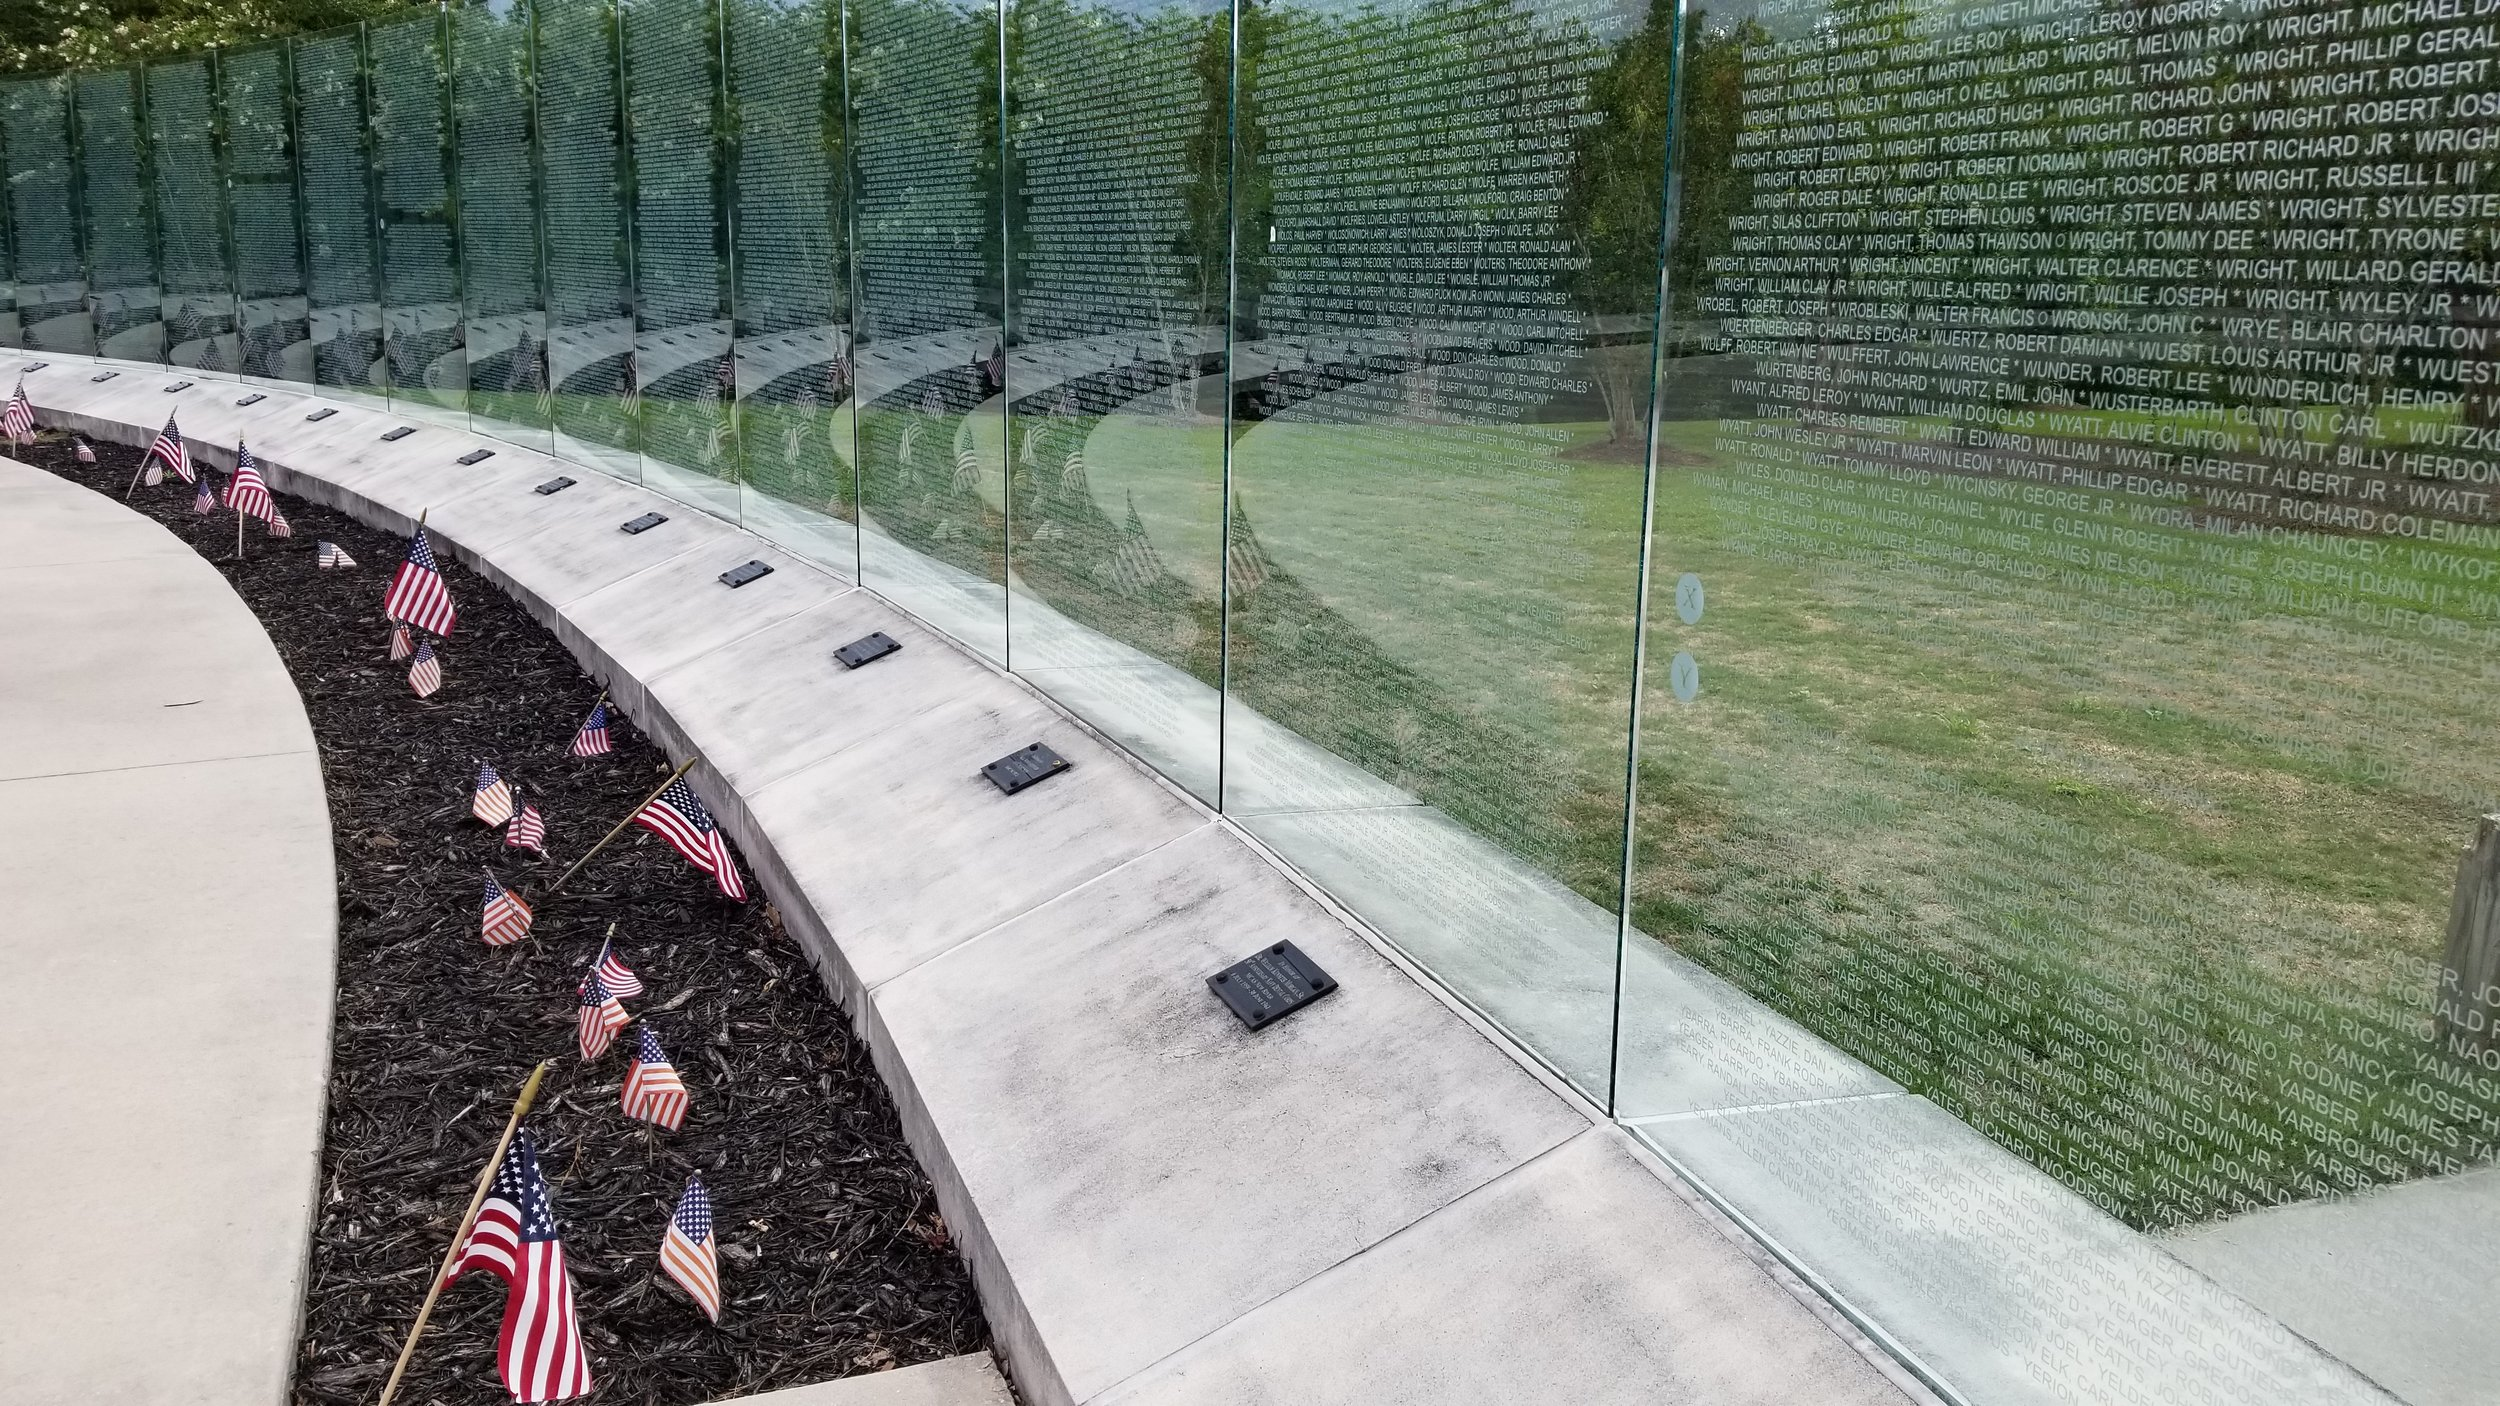 More than 58,000 names are etched into the glass at the Vietnam Veterans Memorial in Jacksonville, NC.